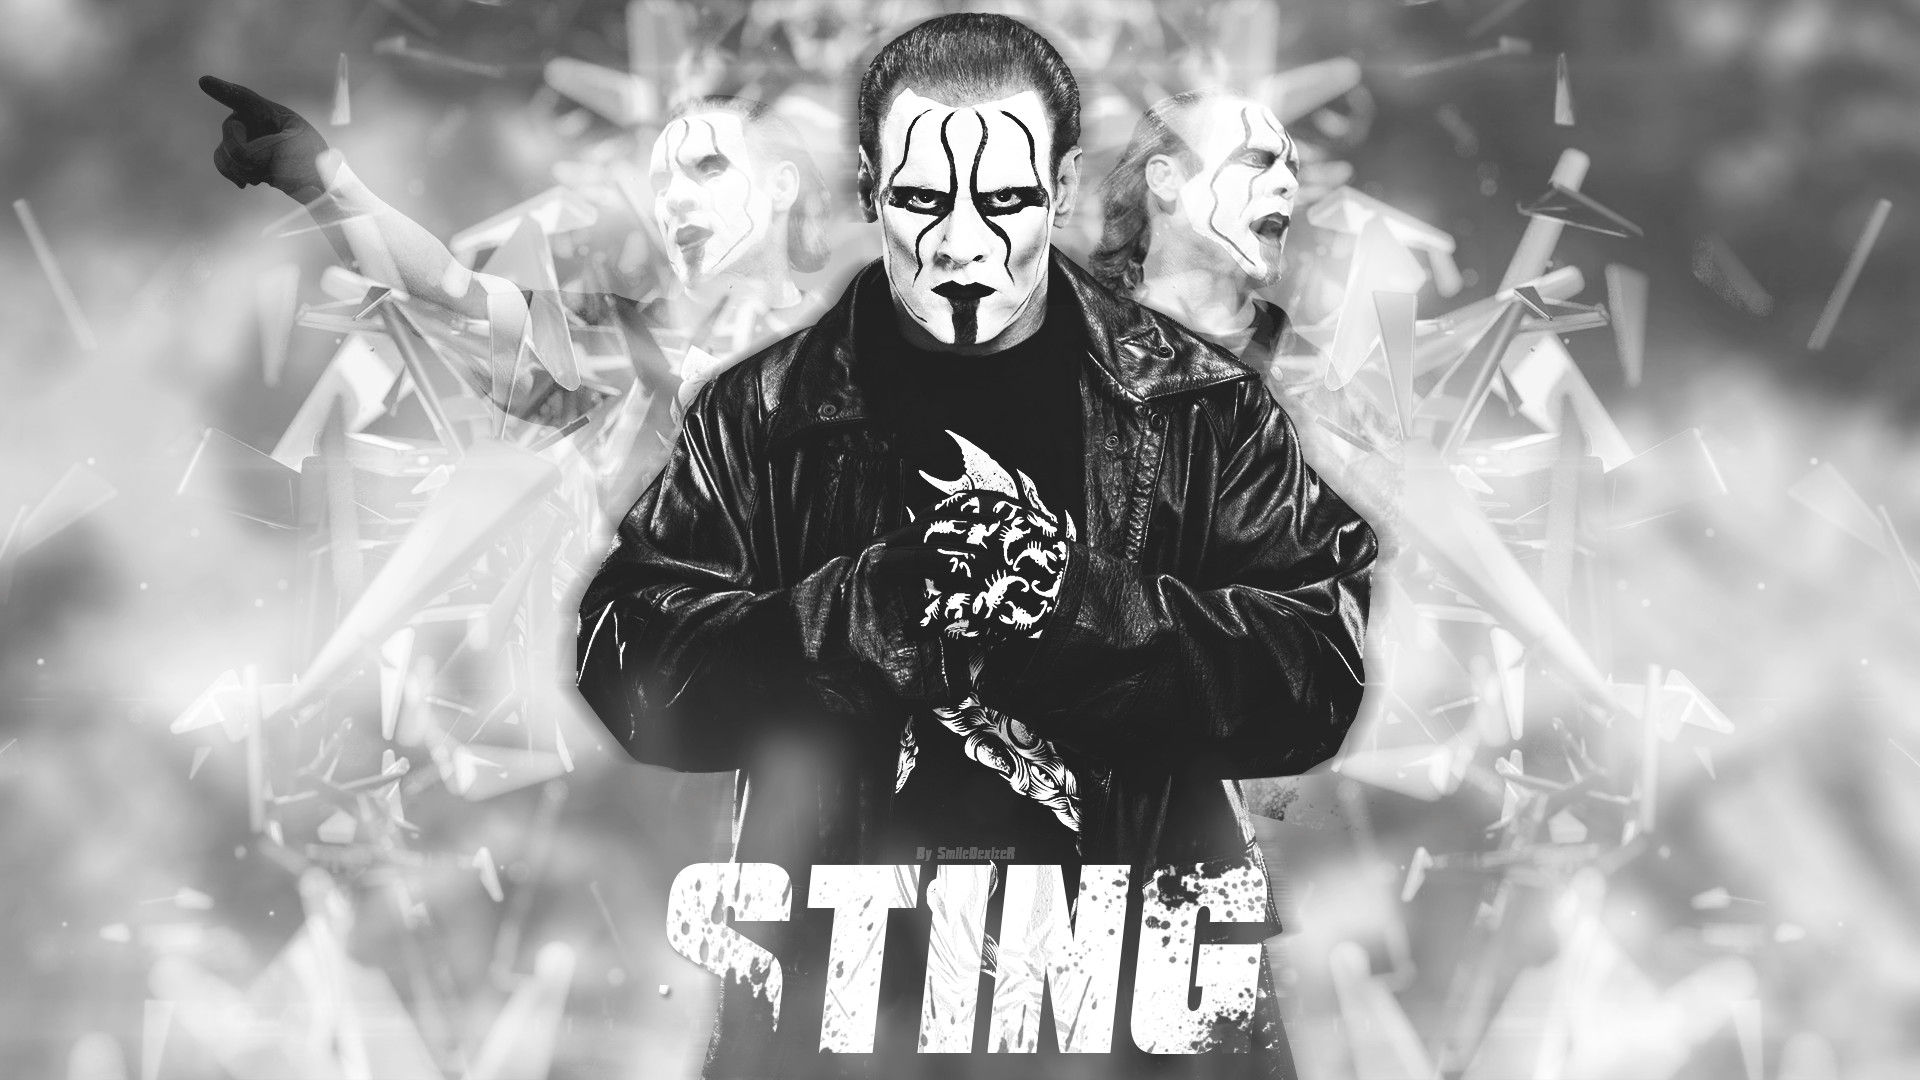 1920x1080 WWE Sting Wallpapers - WallpaperSafari